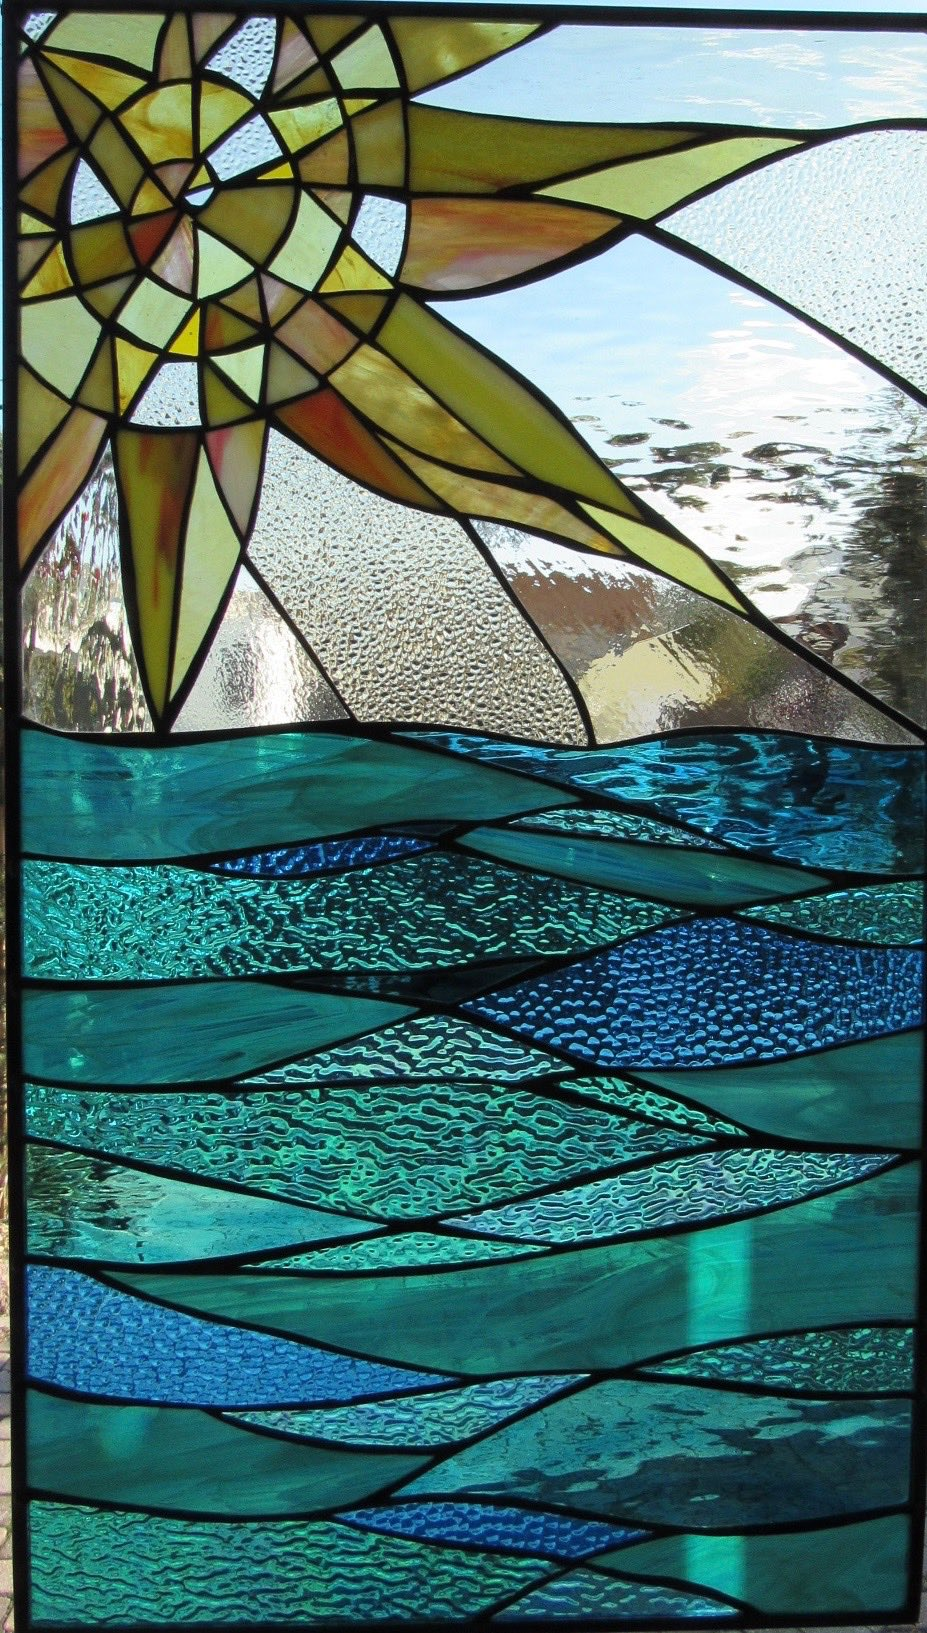 """Sun over Waves"", 2017, custom stained glass by Mary Tantillo."